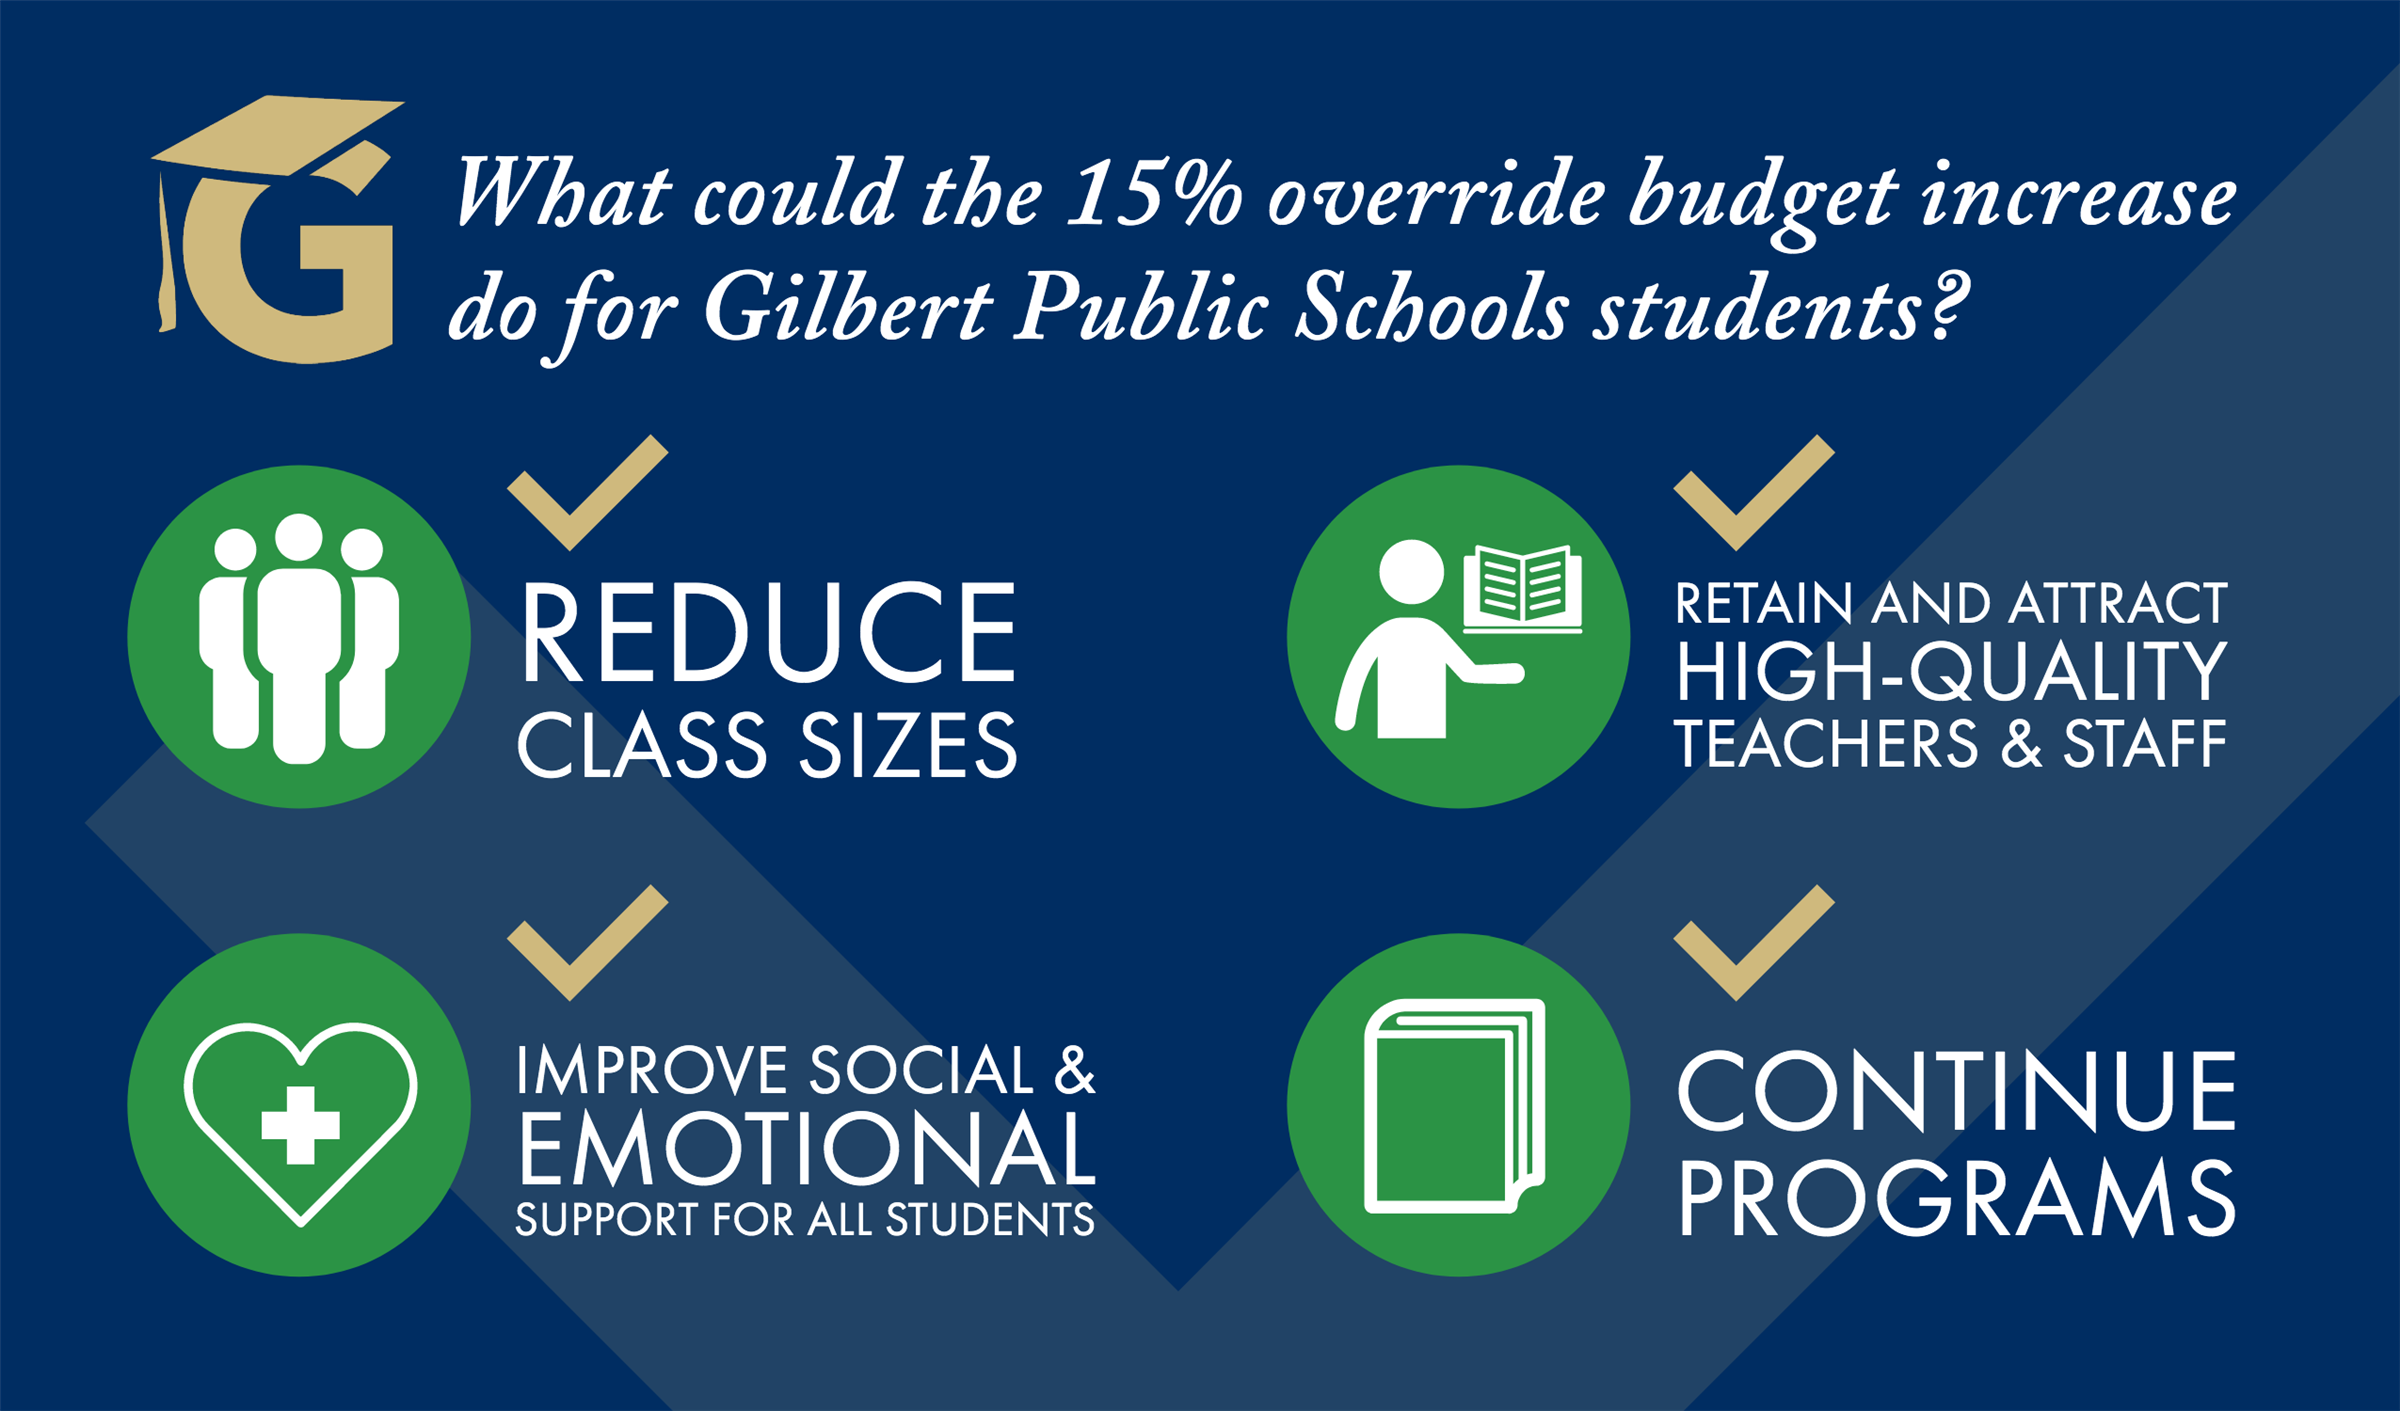 What could the 15% override budget increase do for Gilbert Public Schools students?